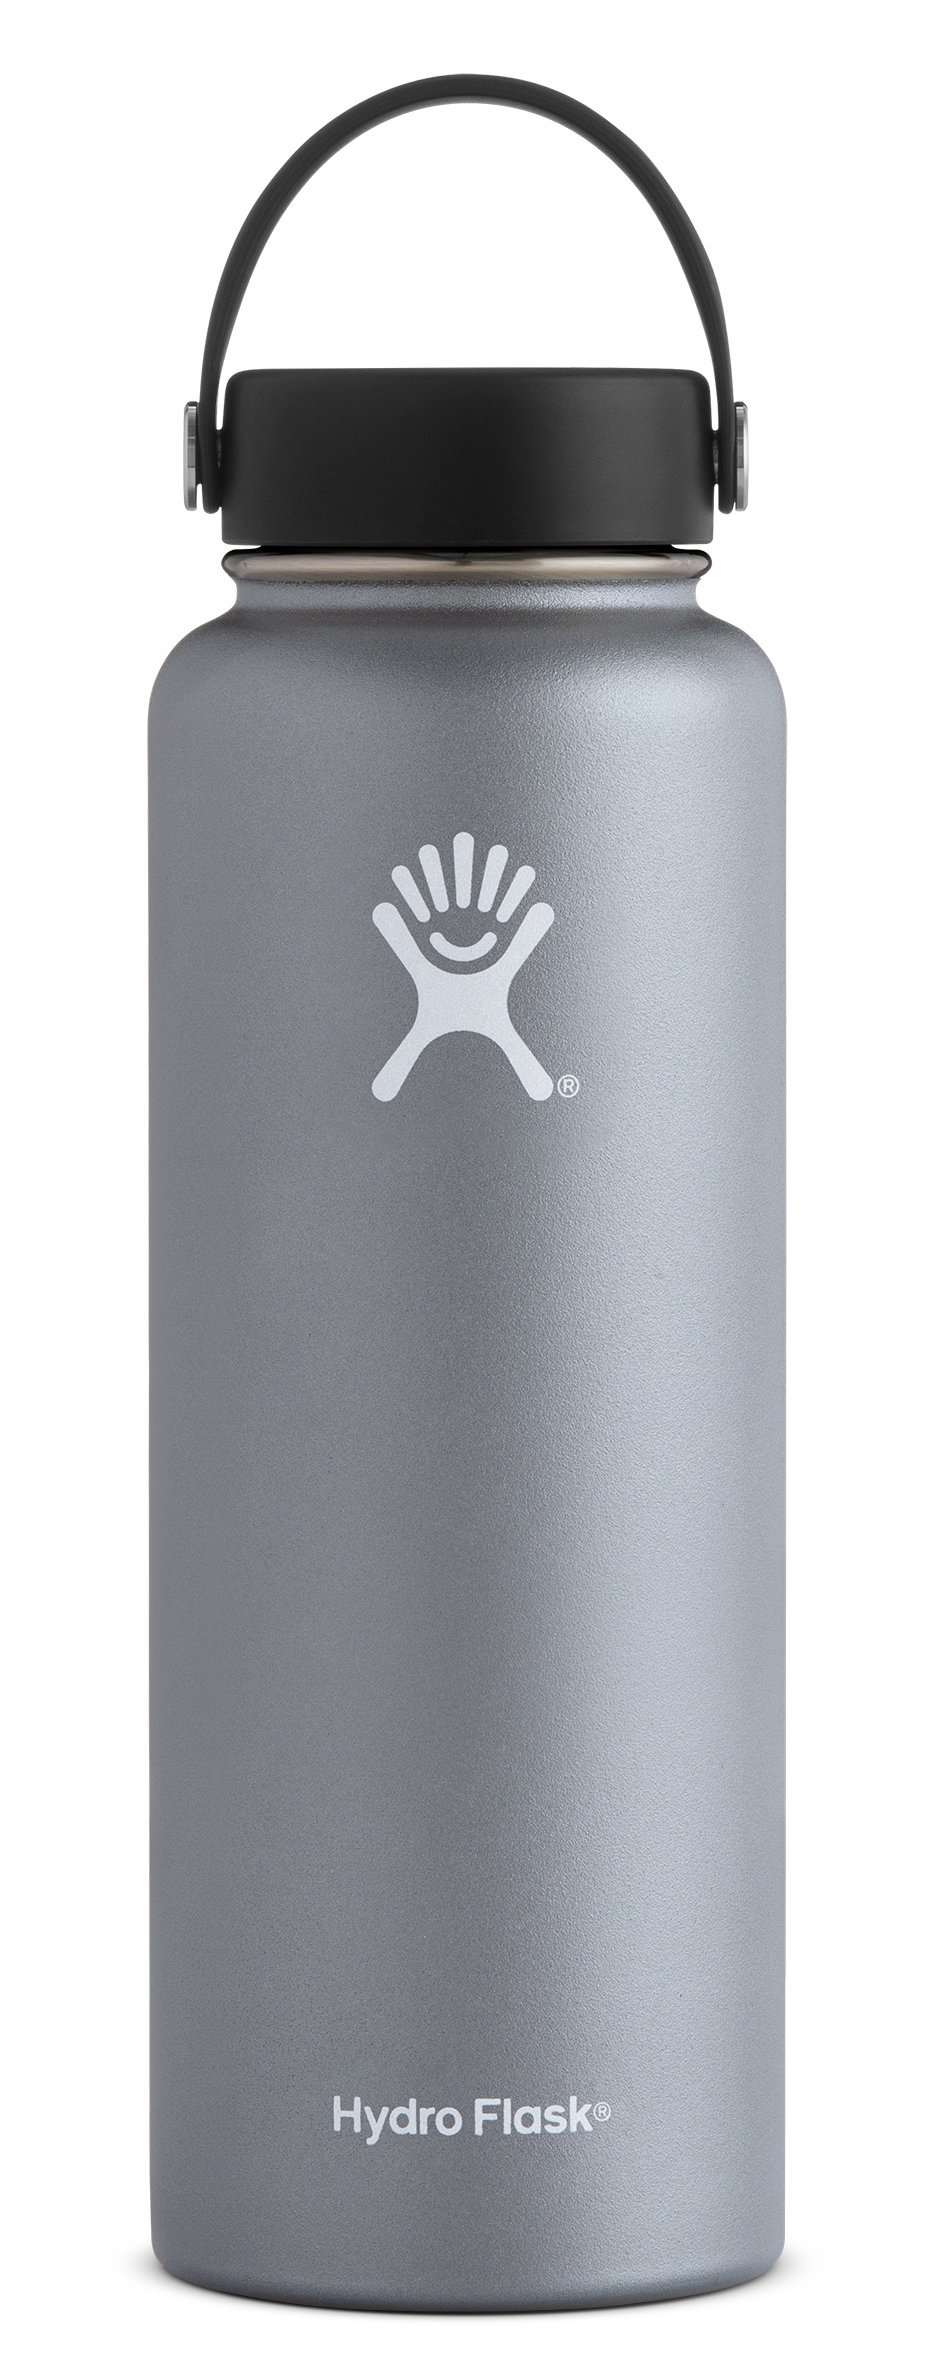 Hydro Flask 40 oz Double Wall Vacuum Insulated Stainless Steel Leak Proof Sports Water Bottle, Wide Mouth with BPA Free Flex Cap, Graphite by Hydro Flask